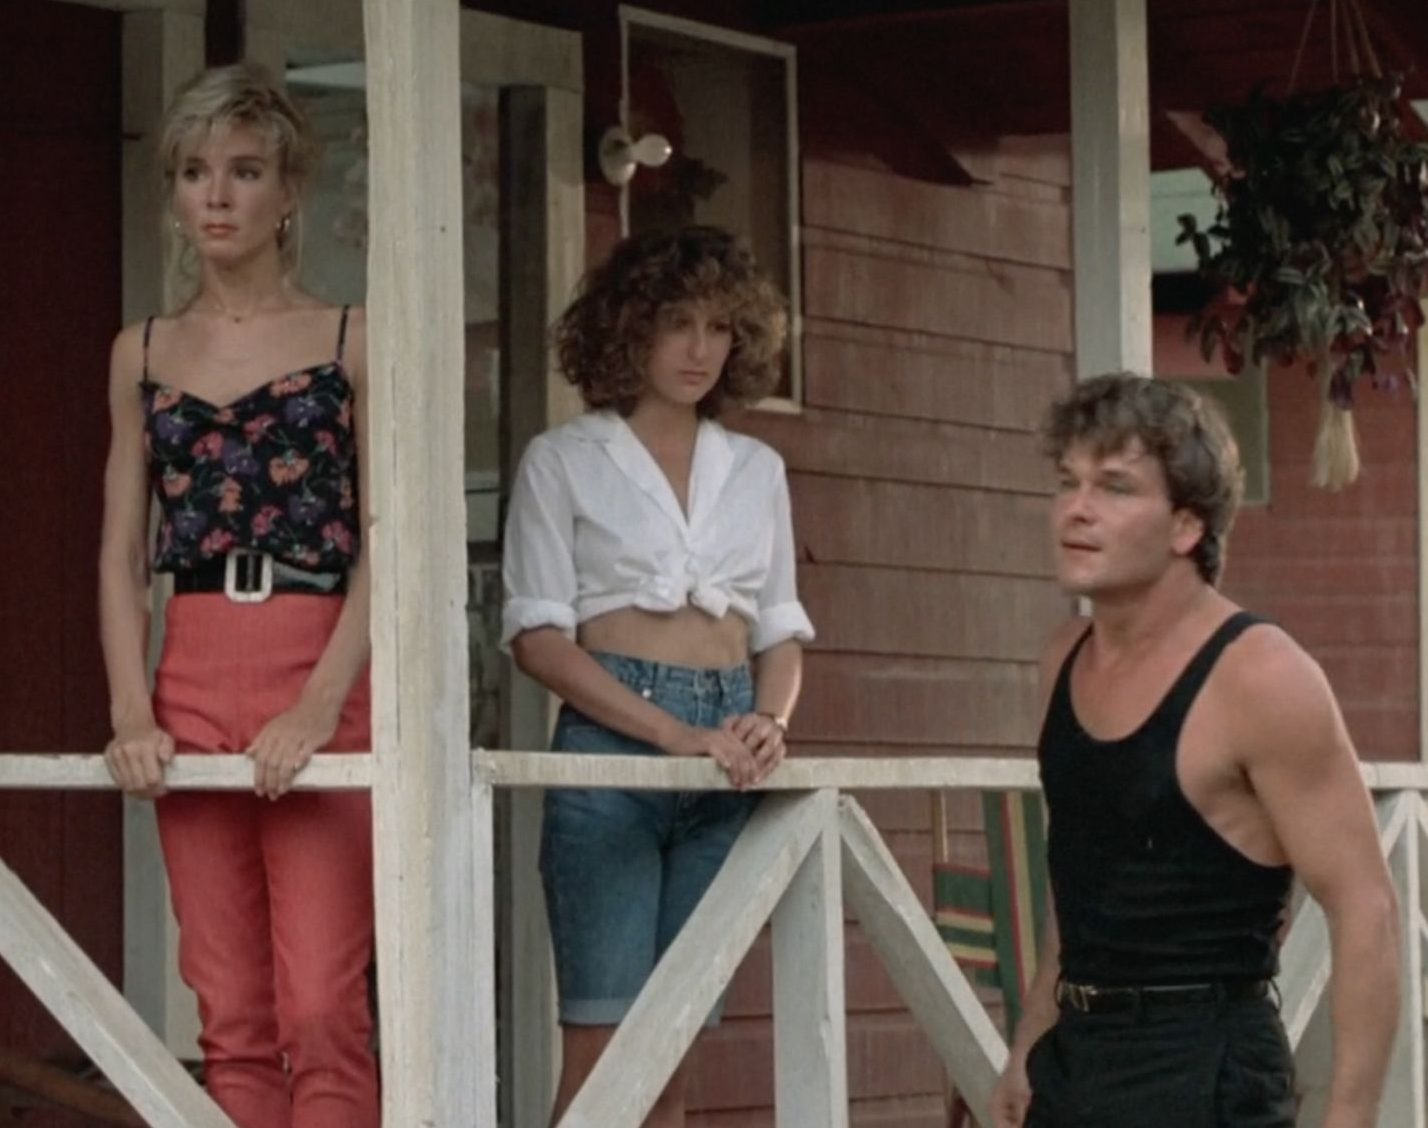 25861ade70d30e9894070b5a66320515 e1617275886657 30 Things You Probably Didn't Know About Dirty Dancing